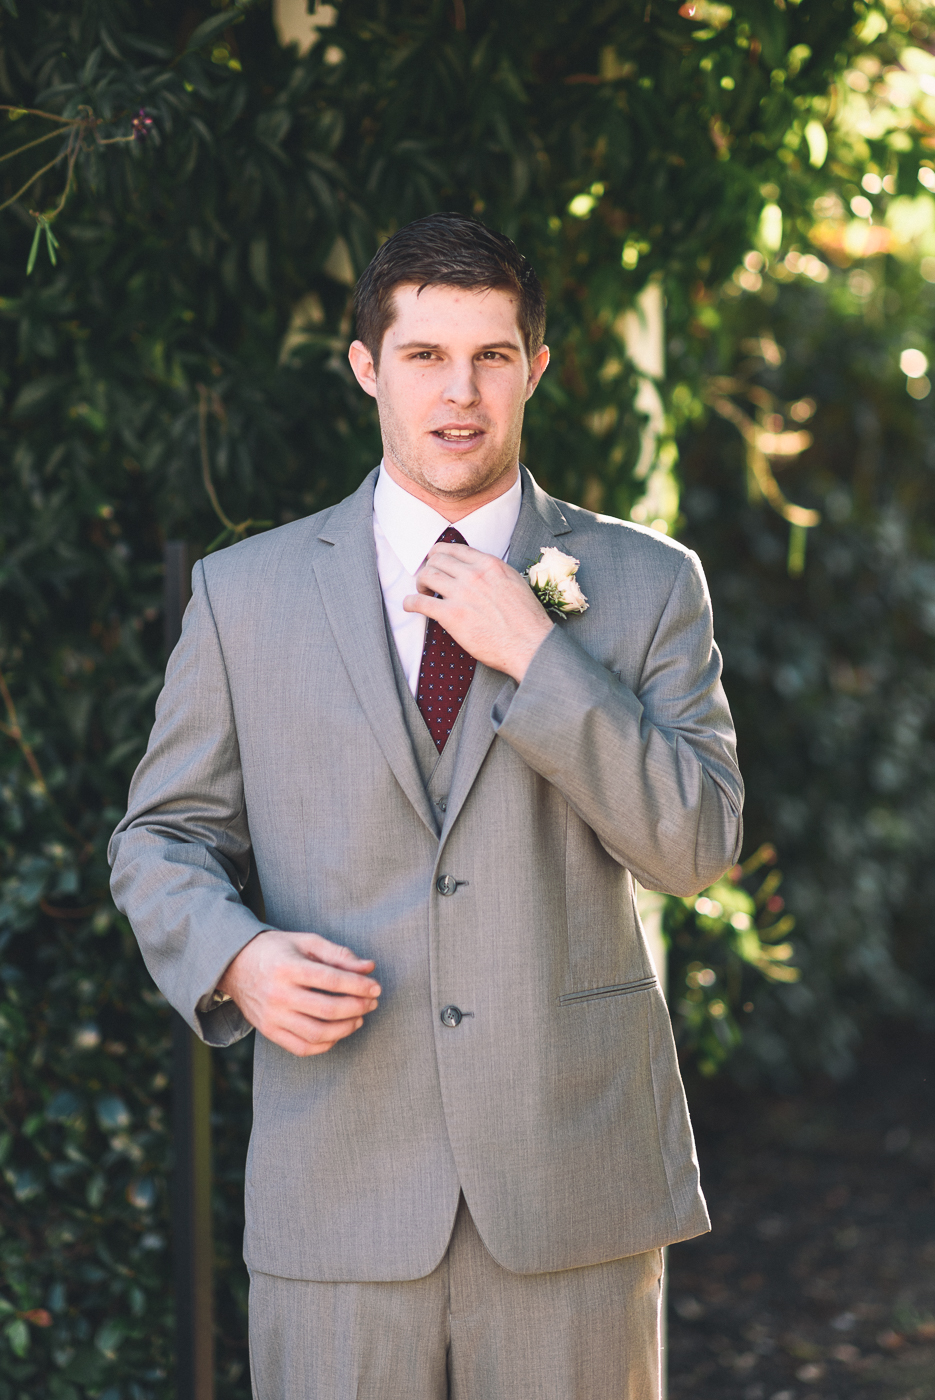 groom portrait maroon tie grey suit boutonniere